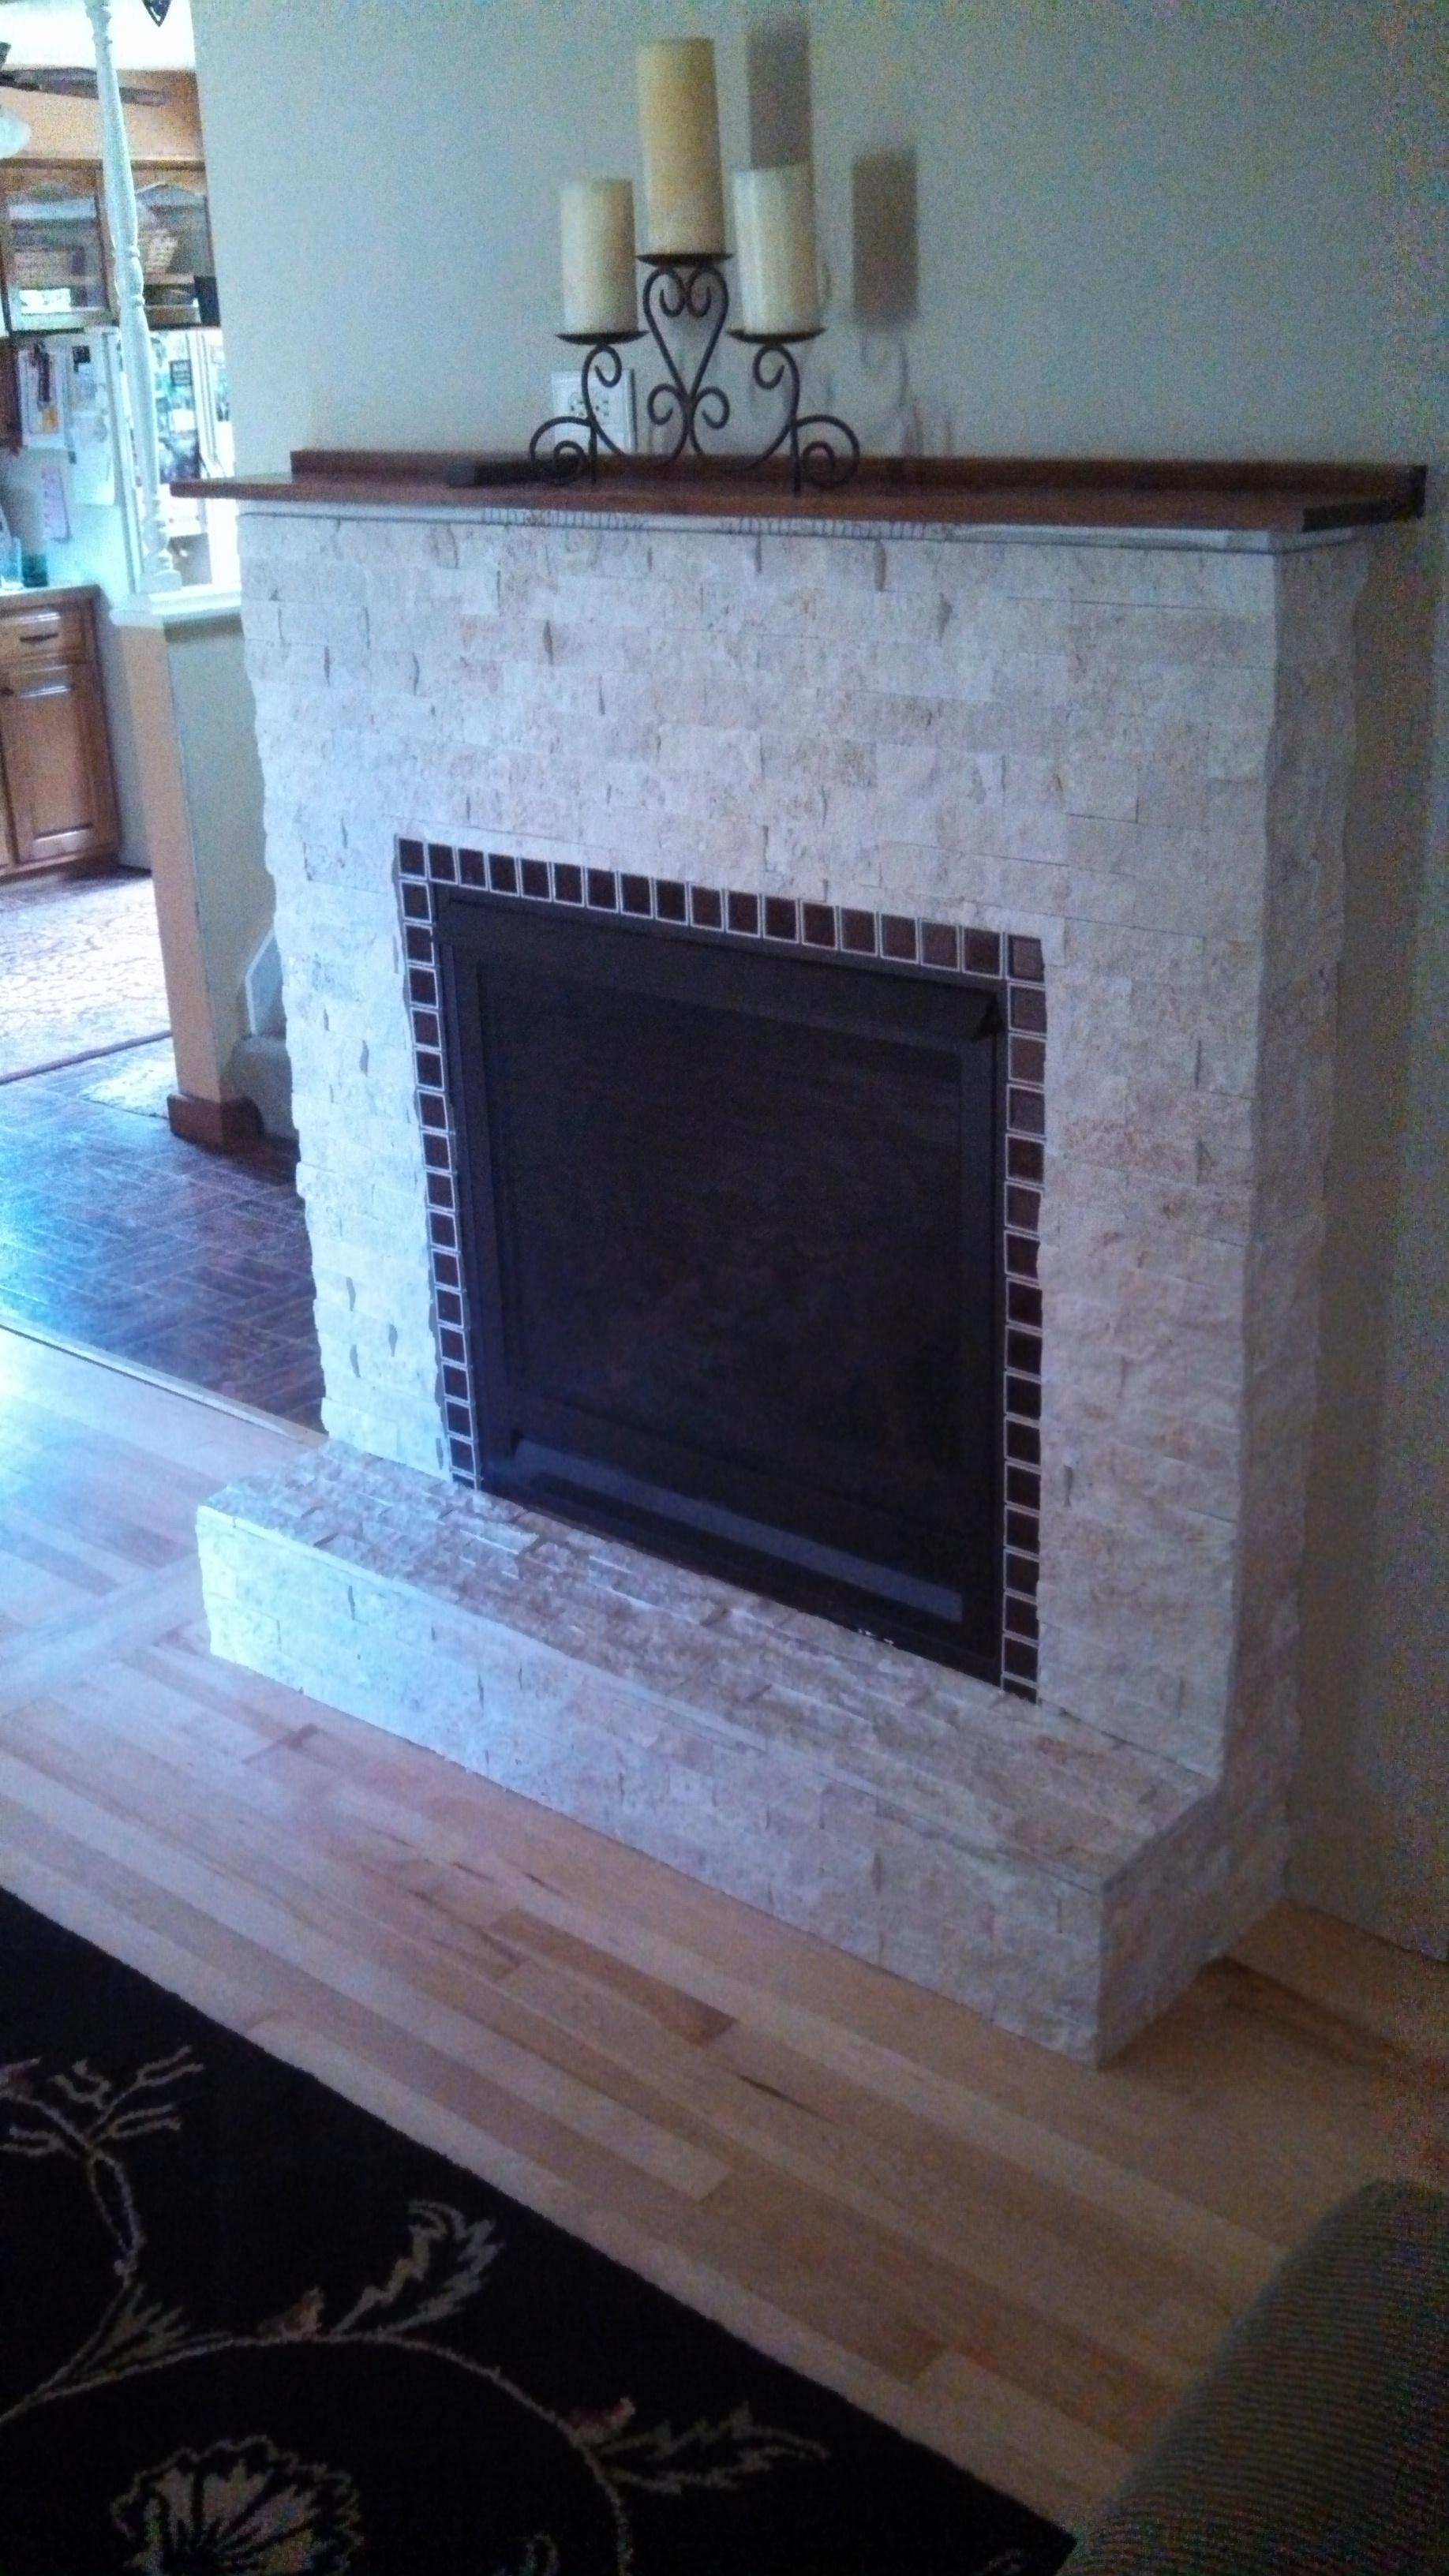 Does your fireplace look tired, old, or dated?  We can design a simple face lift to give that fireplace a glow to compliment the flame!